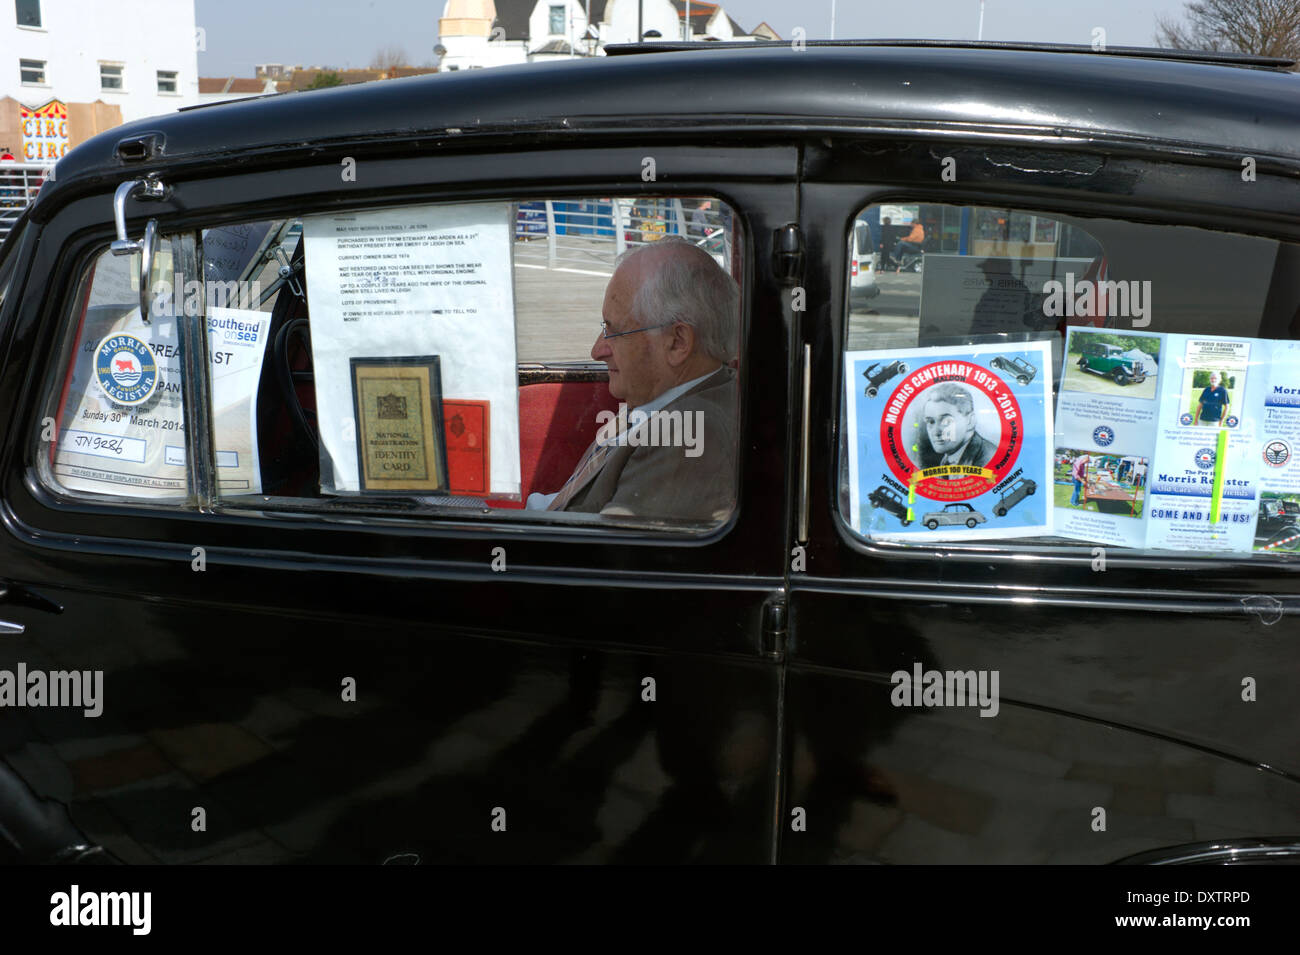 Southend-on-Sea, Essex, England. 30 March 2014 Exhibiting classic old cars. - Stock Image